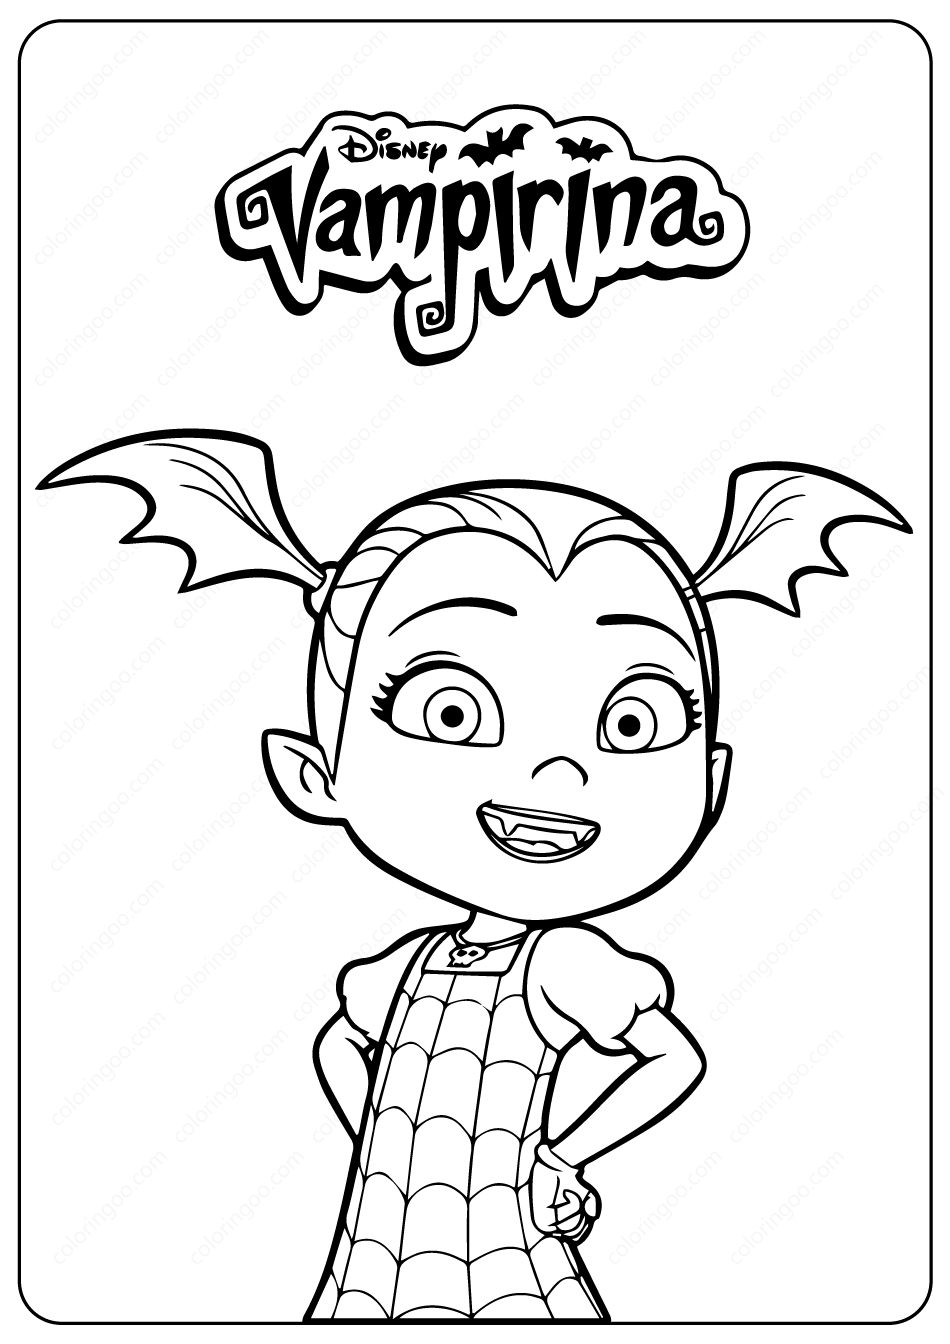 Vampirina PDF Coloring Pages  Coloring pages, Ariel coloring